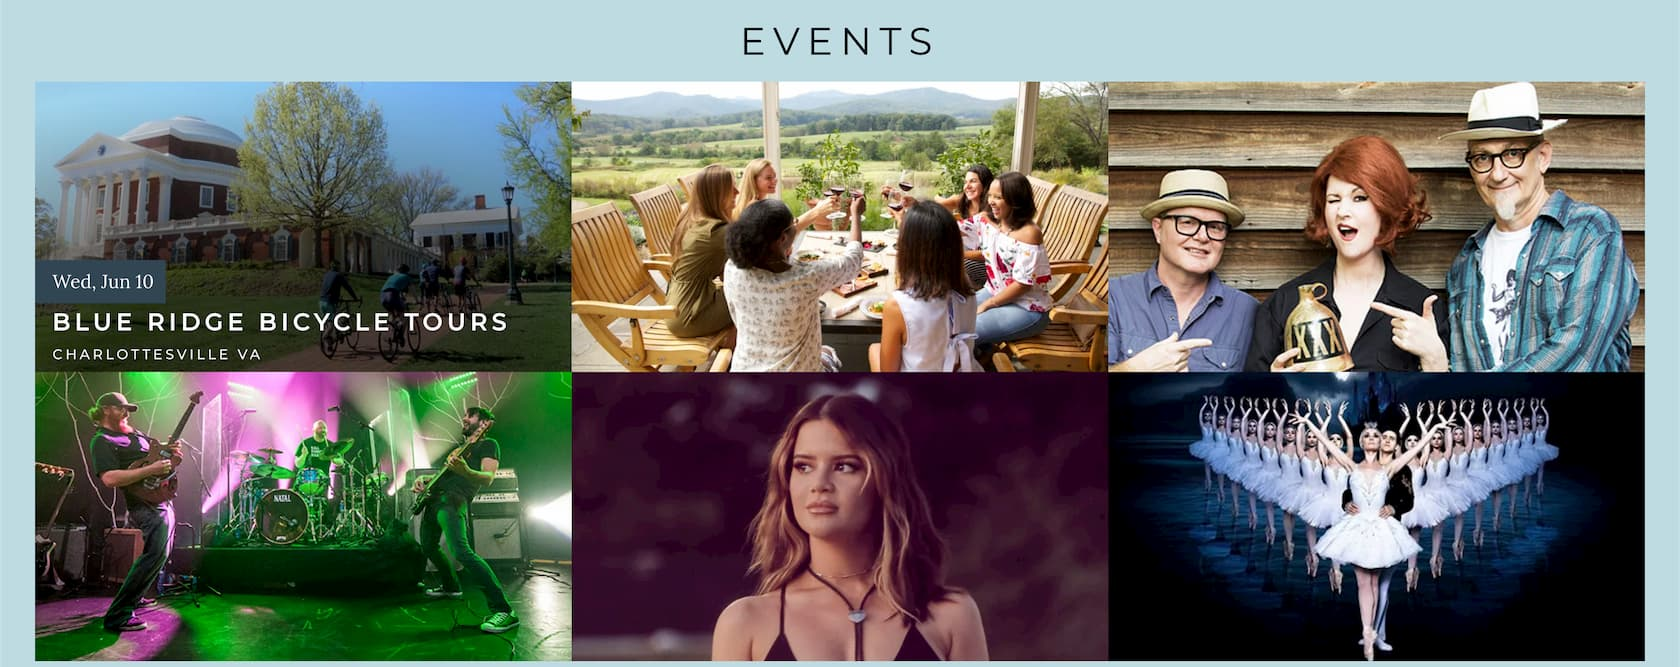 Events in Charlottesville Virginia